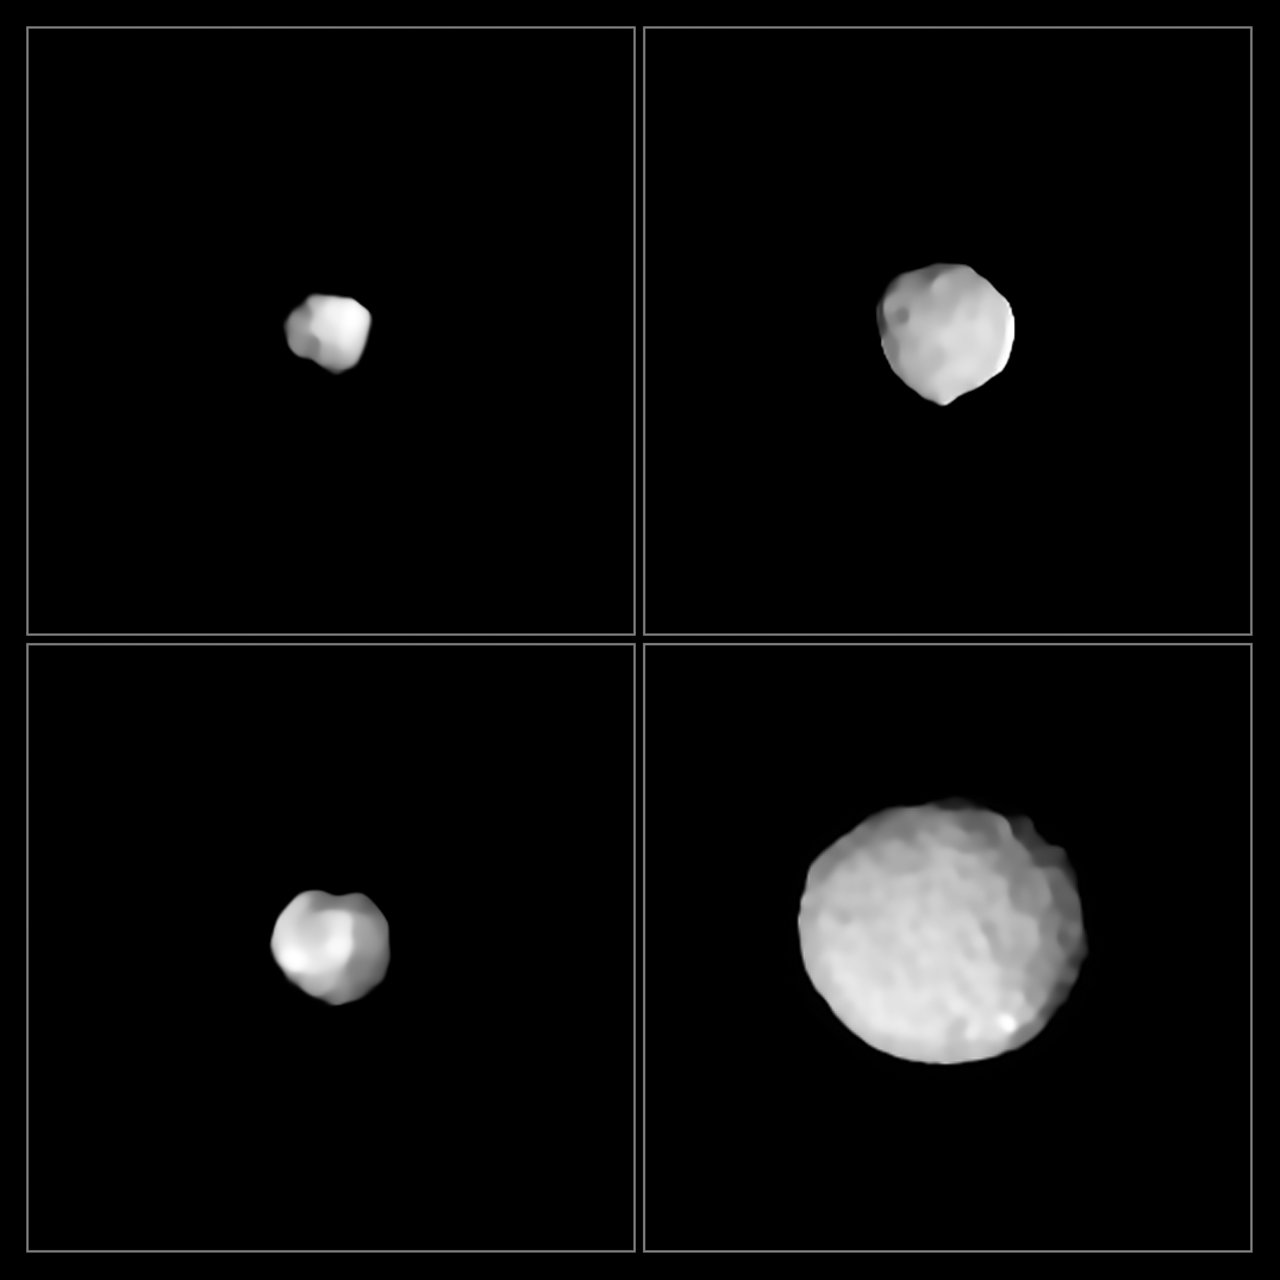 Some of the  asteroid images taken with the SPHERE instrument . Clockwise from top left: 29 Amphitrite, 324 Bamberga, 2 Pallas, and 89 Julia. Images collected as part of an ongoing ESO large program by Pierre Vernazza et al.